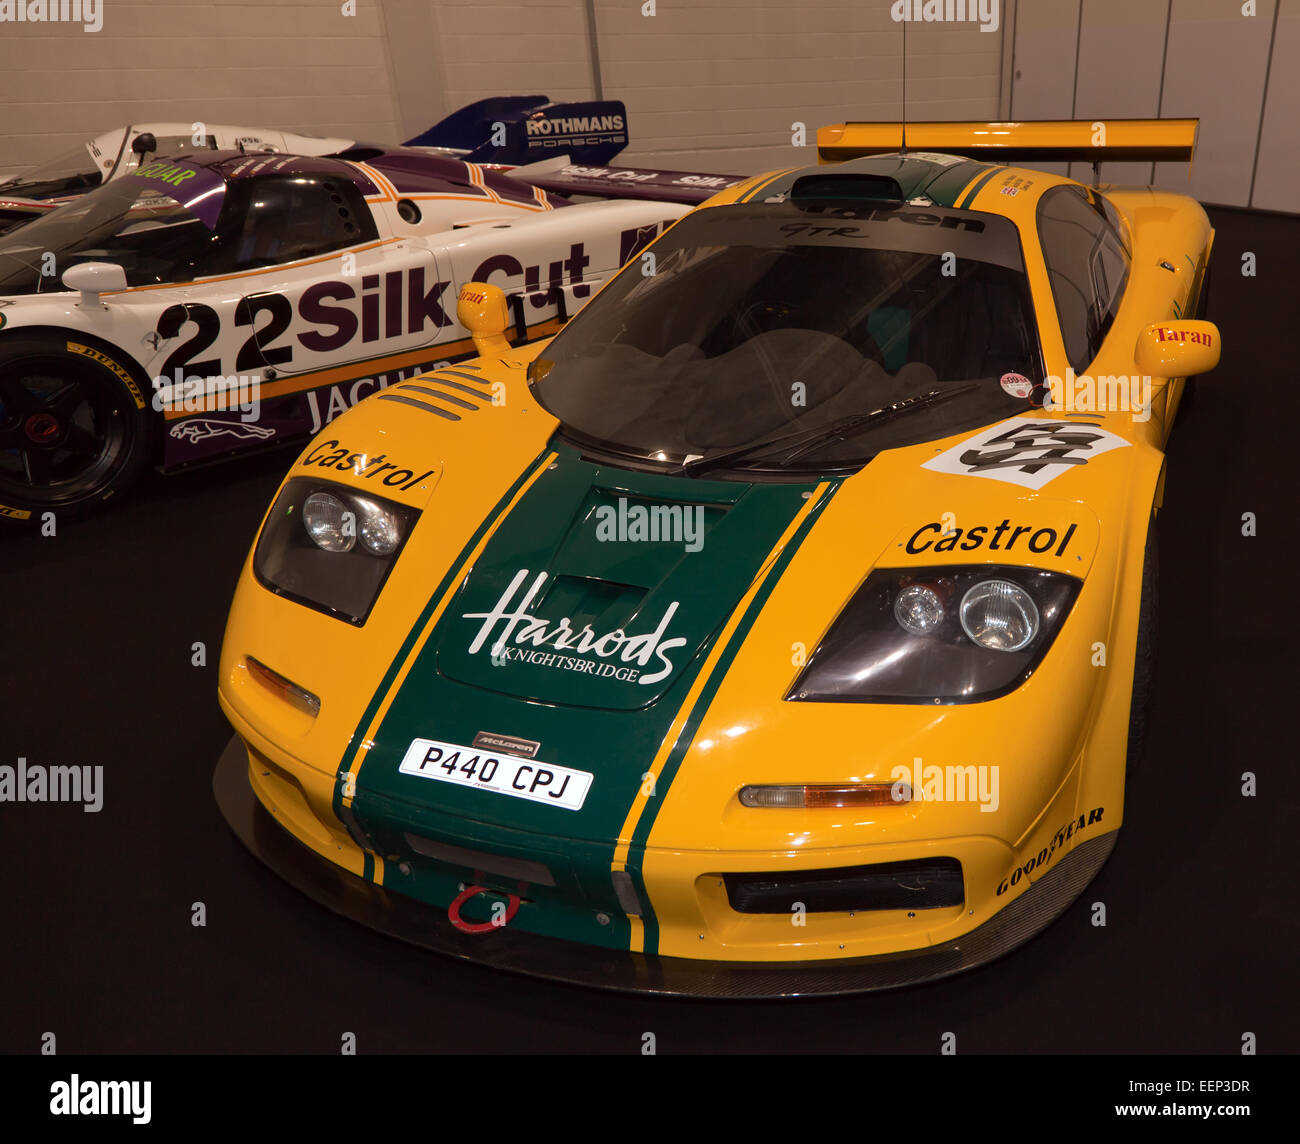 bmw powered mclaren f1 gtr 06r le mans race car on. Black Bedroom Furniture Sets. Home Design Ideas